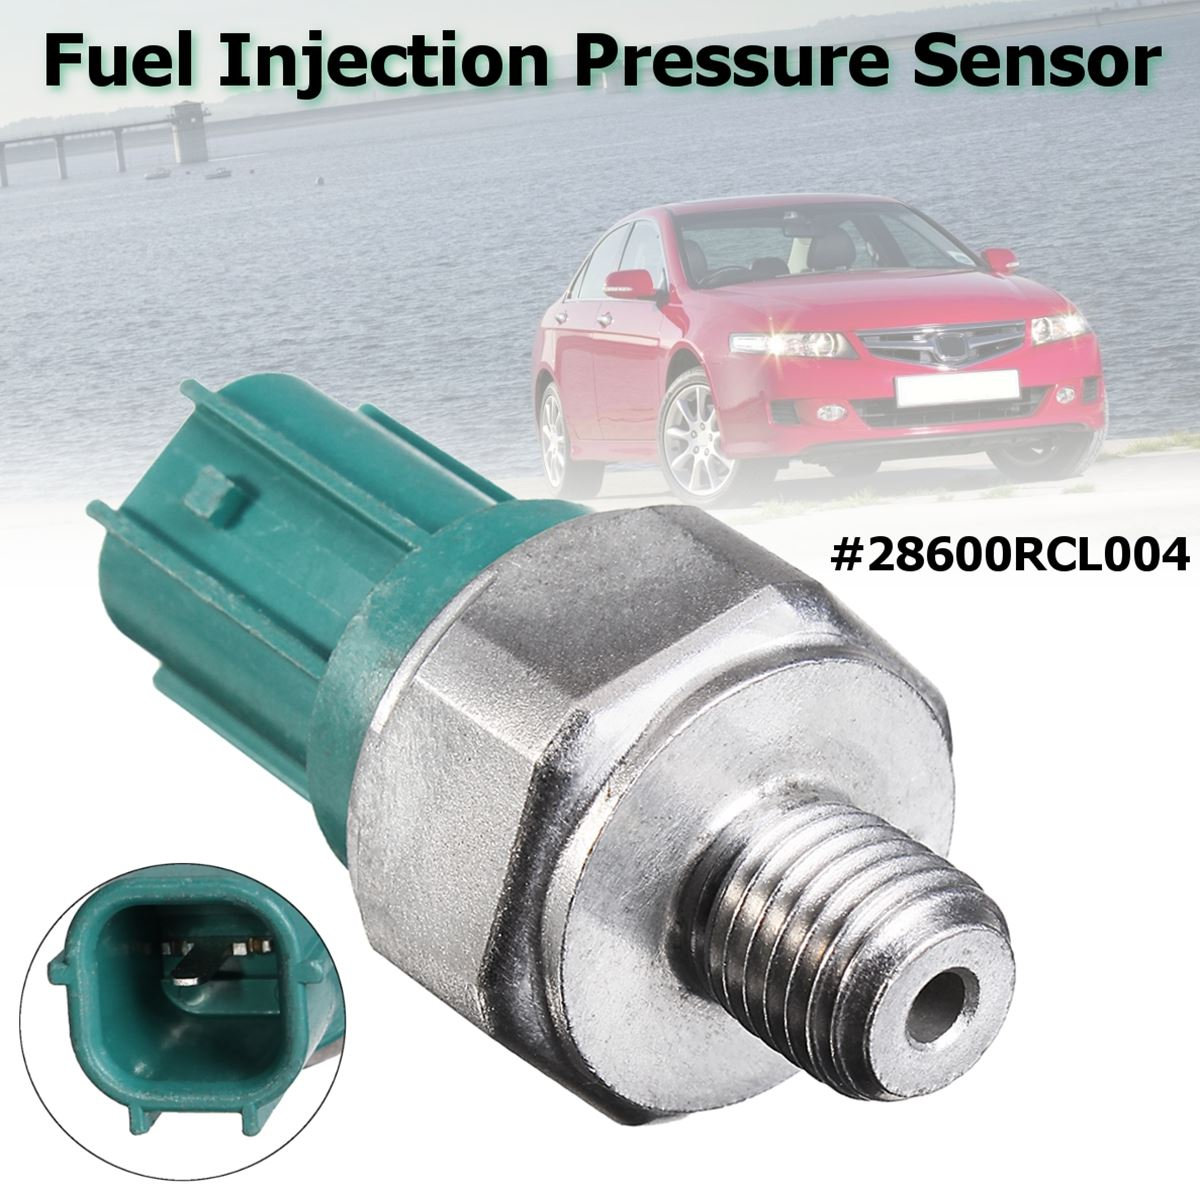 #28600RCL004 #PS626 Fuel Injection Pressure Transmission Sensor For Honda/Accord/Acura/CR V Element RSX TSX 2003 2004 2005 2006|sensor sensor|sensor honda|sensor pressure - title=